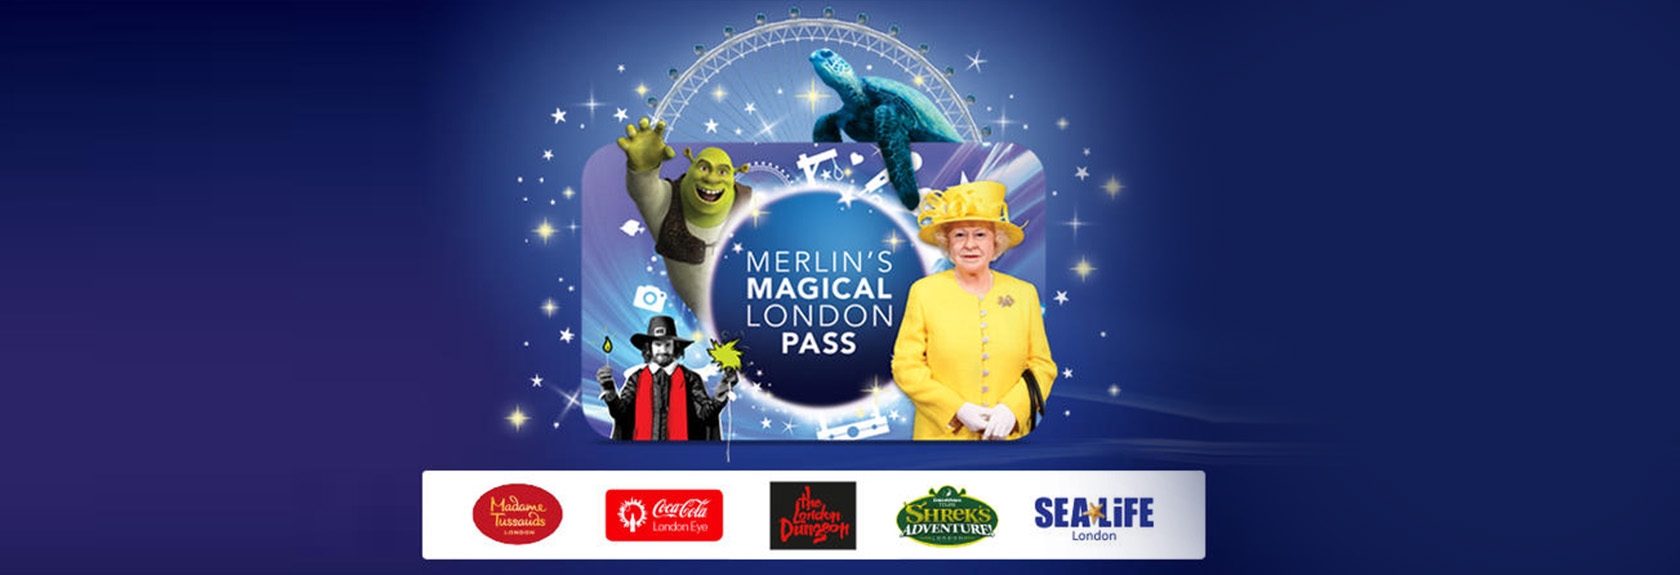 Merlin Magical London Pass